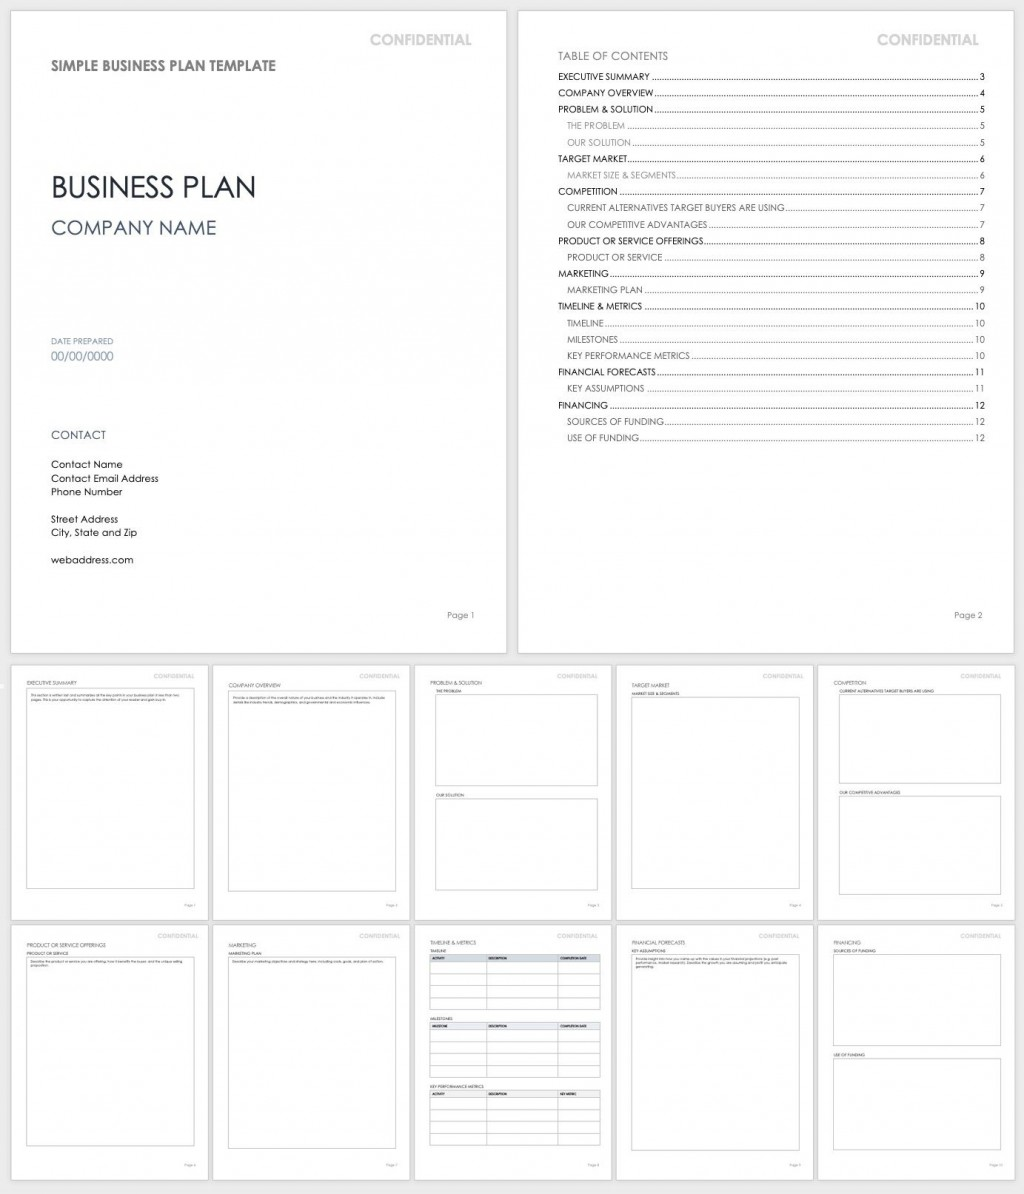 007 Shocking Basic Busines Plan Template High Resolution  Simple Word Download Easy Free AustraliaLarge